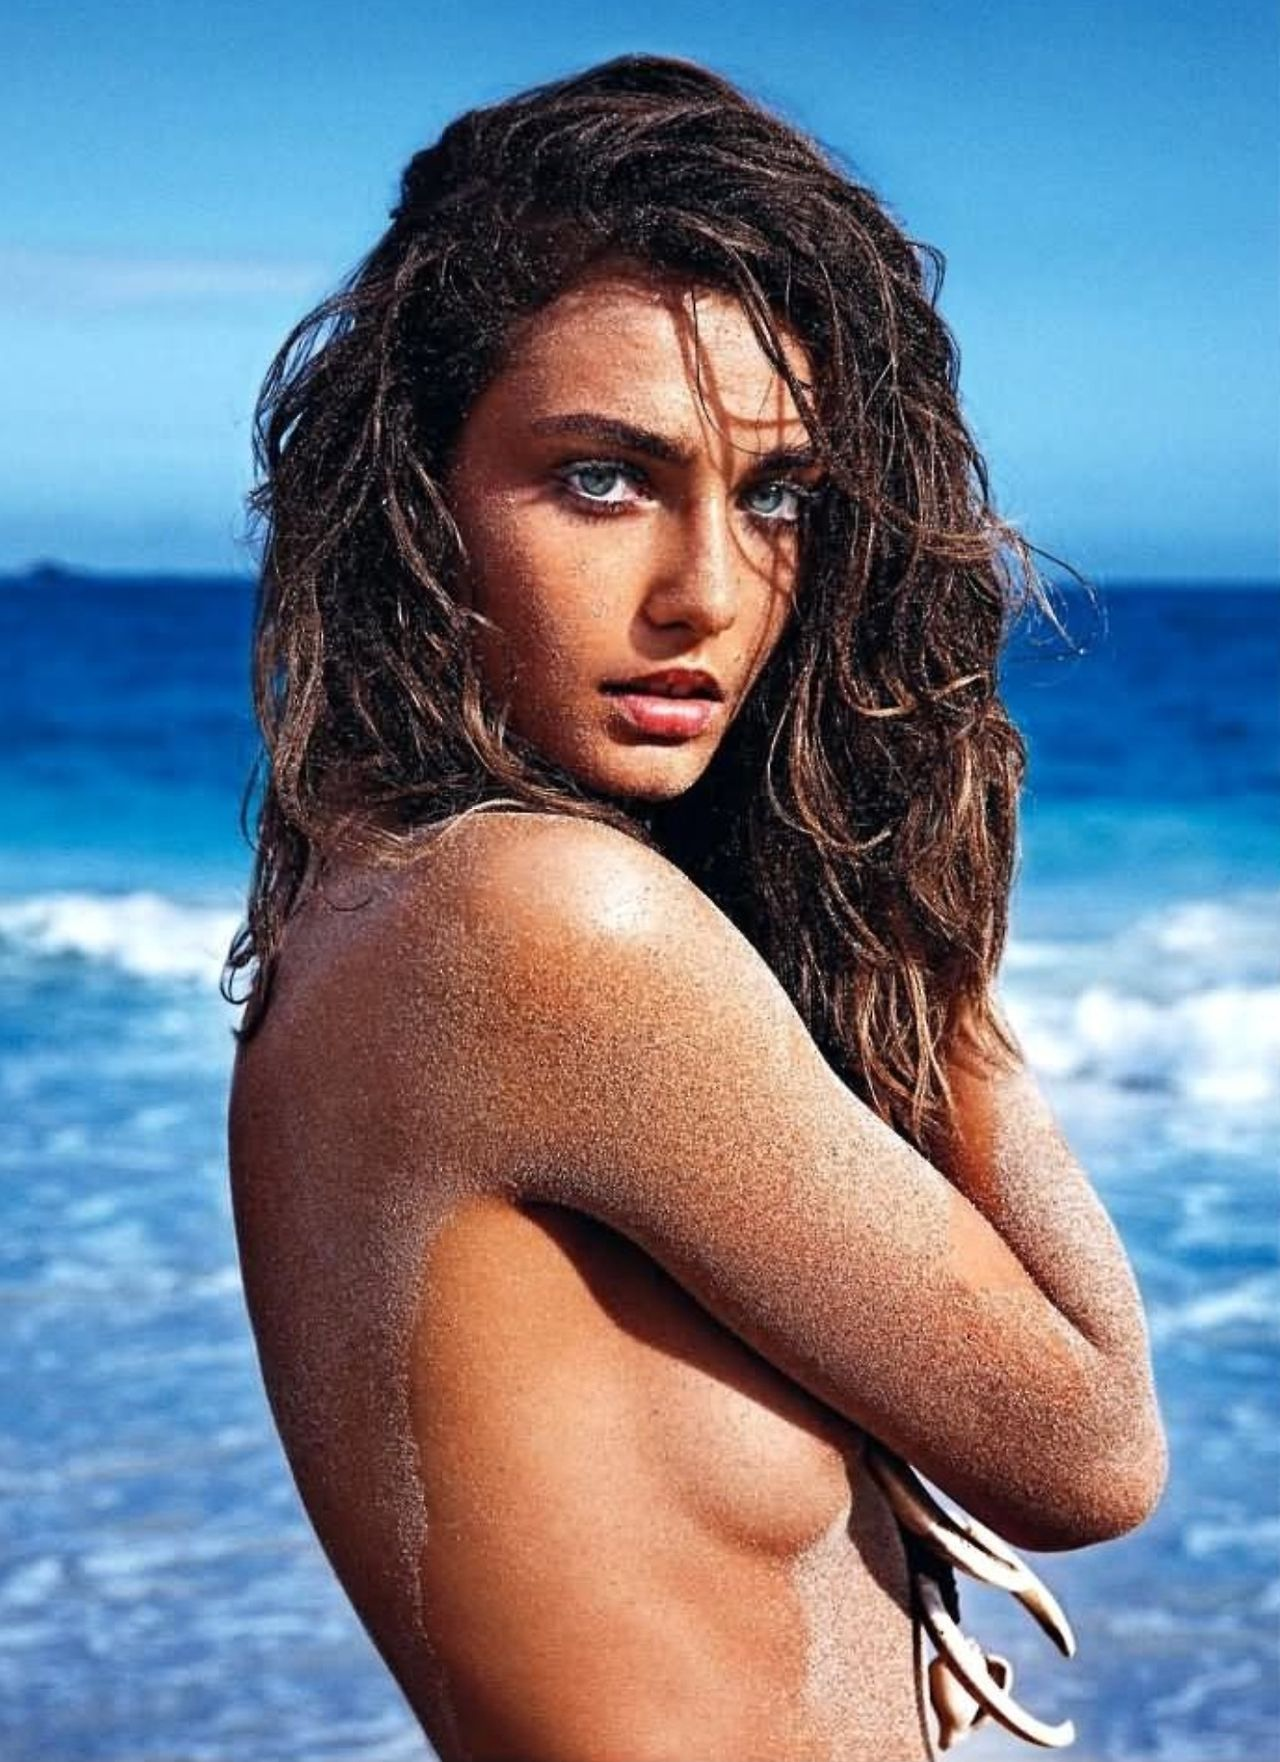 ☆ Andreea Diaconu | Photography by Mario Sorrenti | For Vogue Magazine France | June 2013